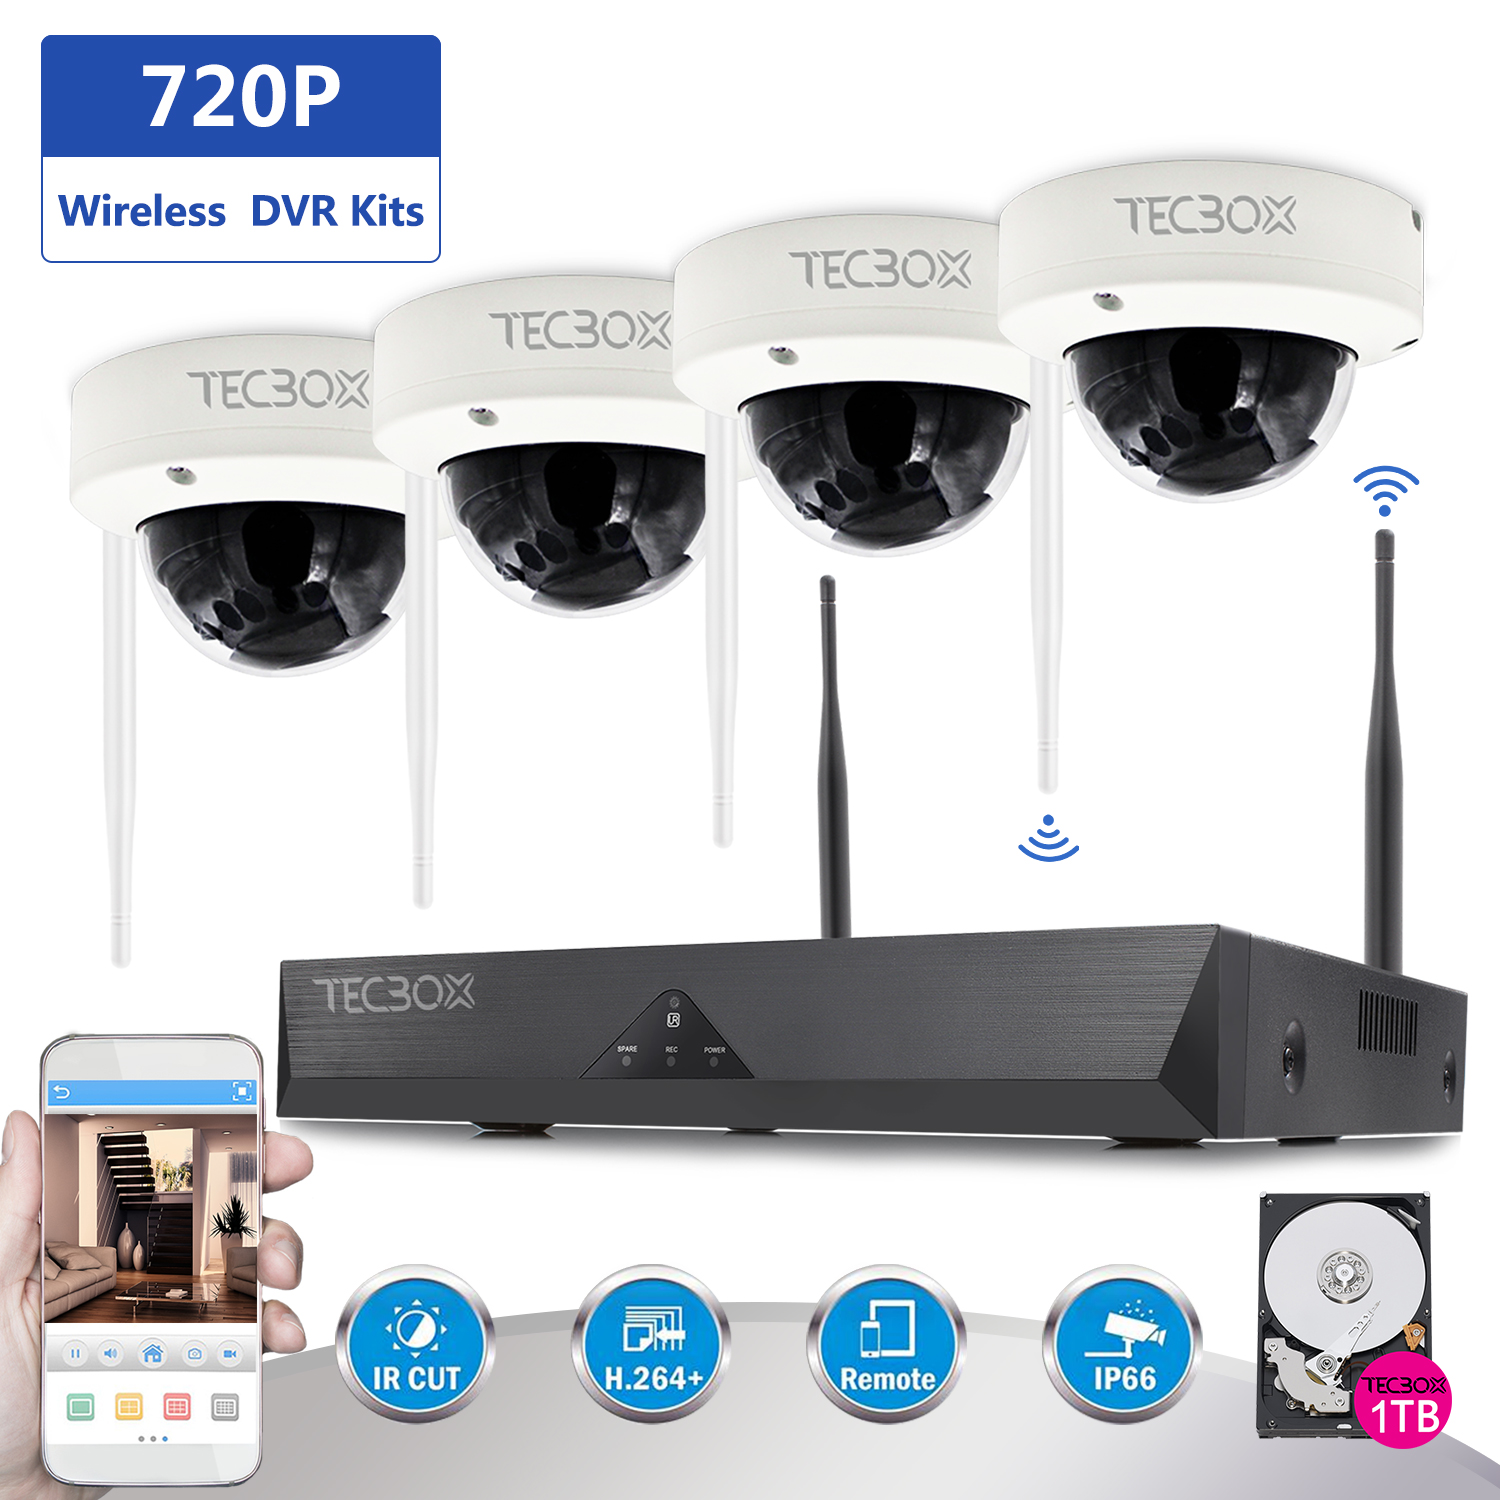 TECBOX Wireless Security Camera System 4 Channel 720P Nvr Home Video Cctv Surveillance Dvr Recorder, 1TB Hard Drive 4 Hd 1.3Mp Night Vision, Waterproof, Indoor / Outdoor Wifi Security Camera